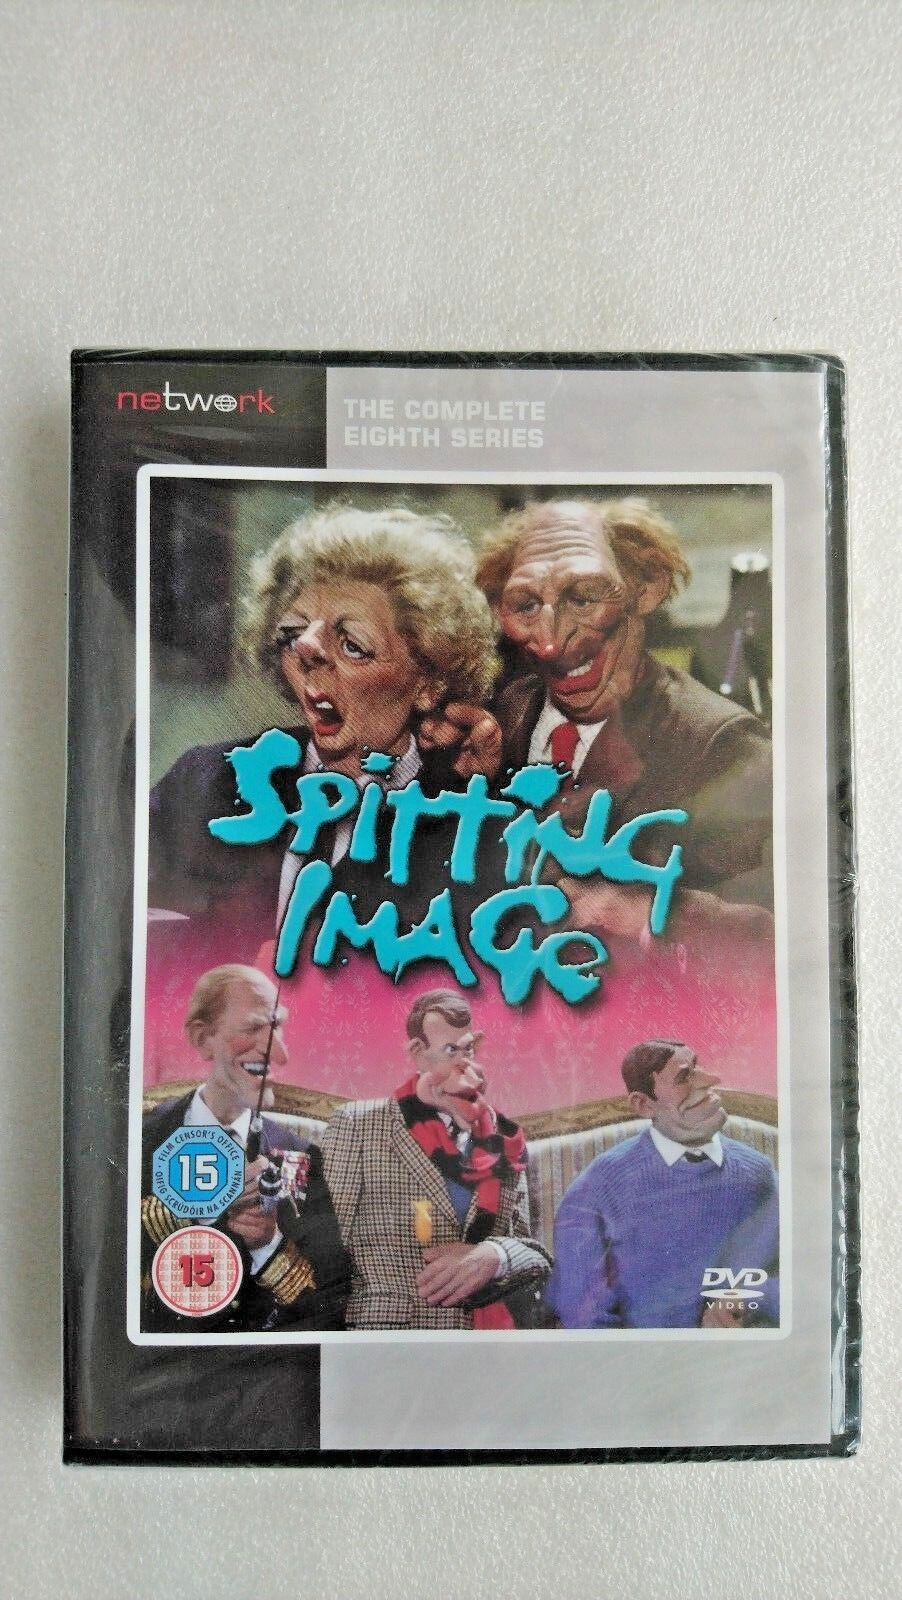 Spitting Image - Series 8 - Complete (DVD, 2009) - NEW and SEALED